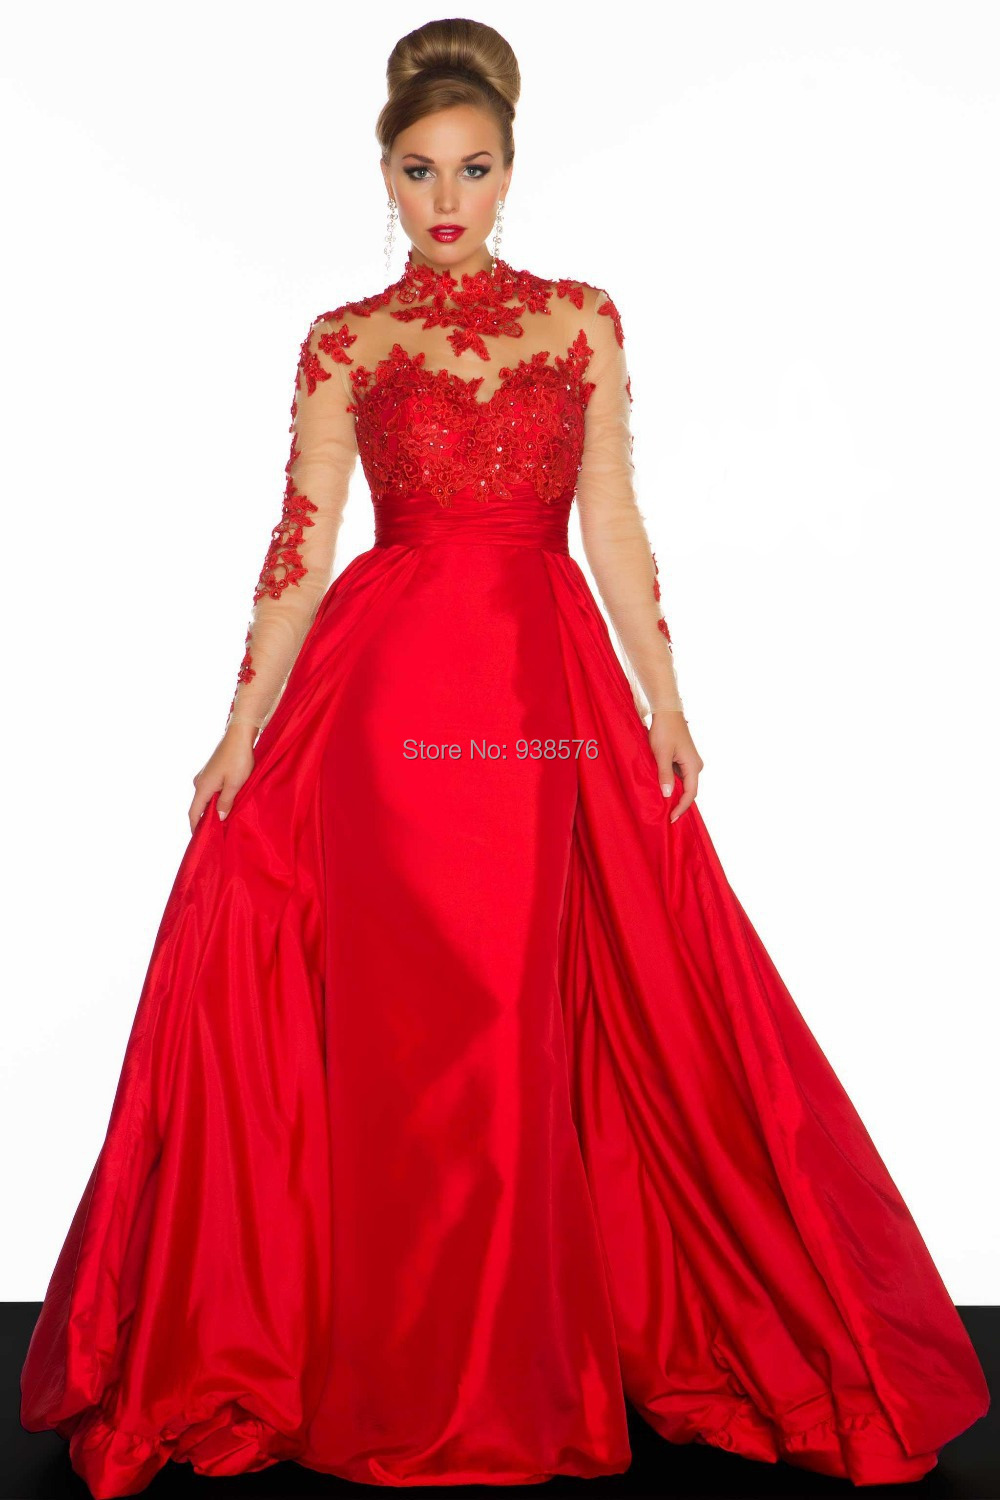 Plus Size Evening Gowns With Sleeves Plus Size Evening Gown For